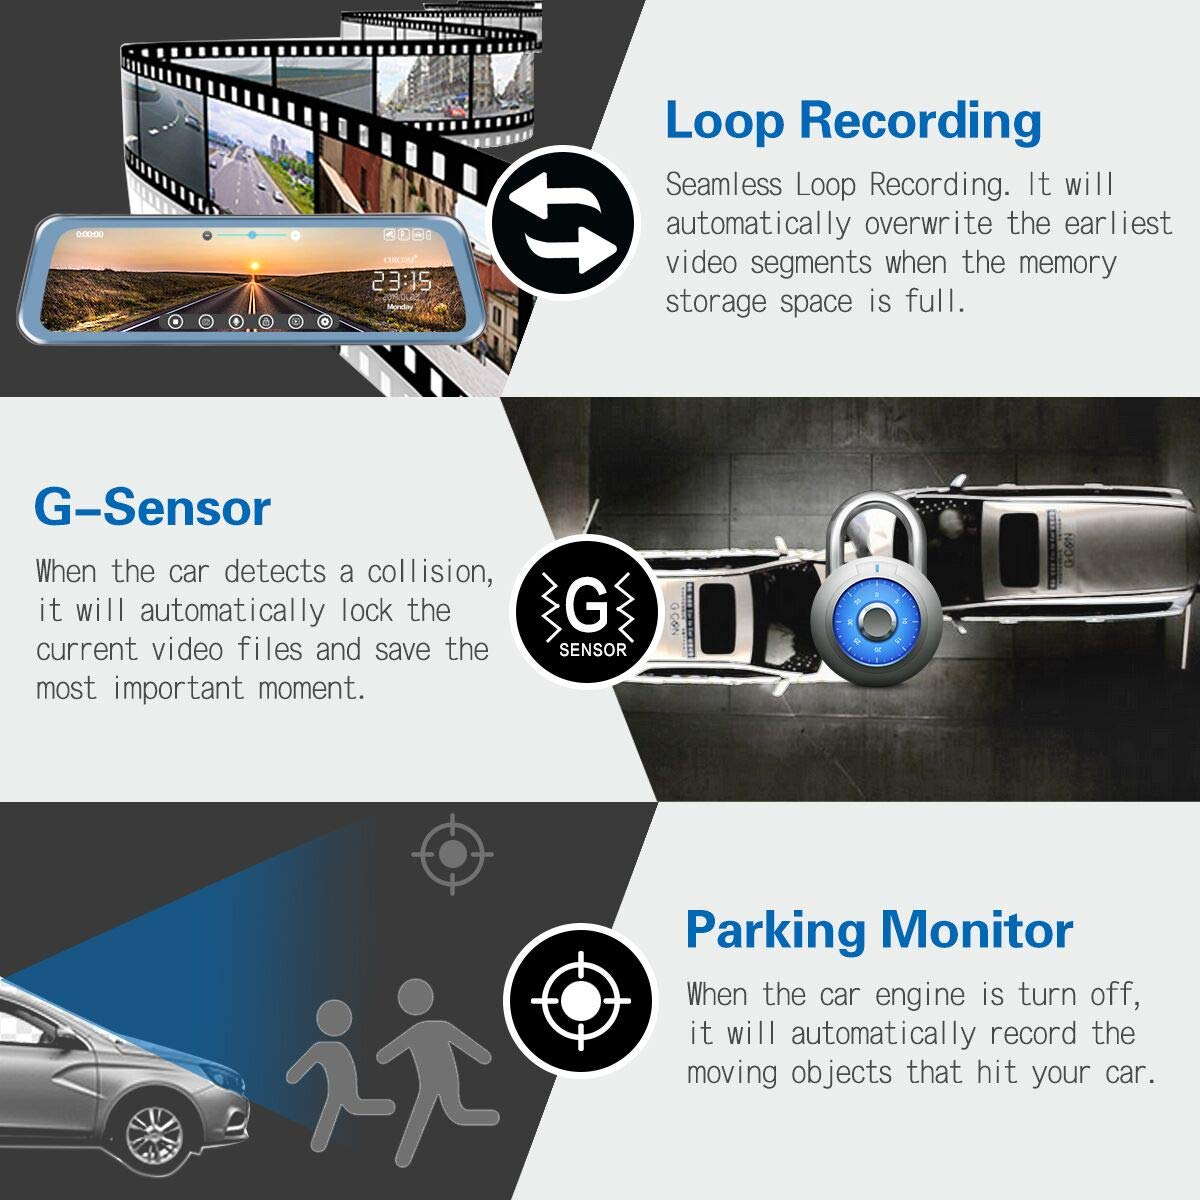 Mirror Dash Cam 9.66'' Dual Lens Full Touch Screen Stream Media Rear View Mirror Camera Made of Aluminum Alloy, 1080P 170°Front and 1080P 140°Backup Camera with Parking Monitor and G-Sensor by CHICOM (Image #5)